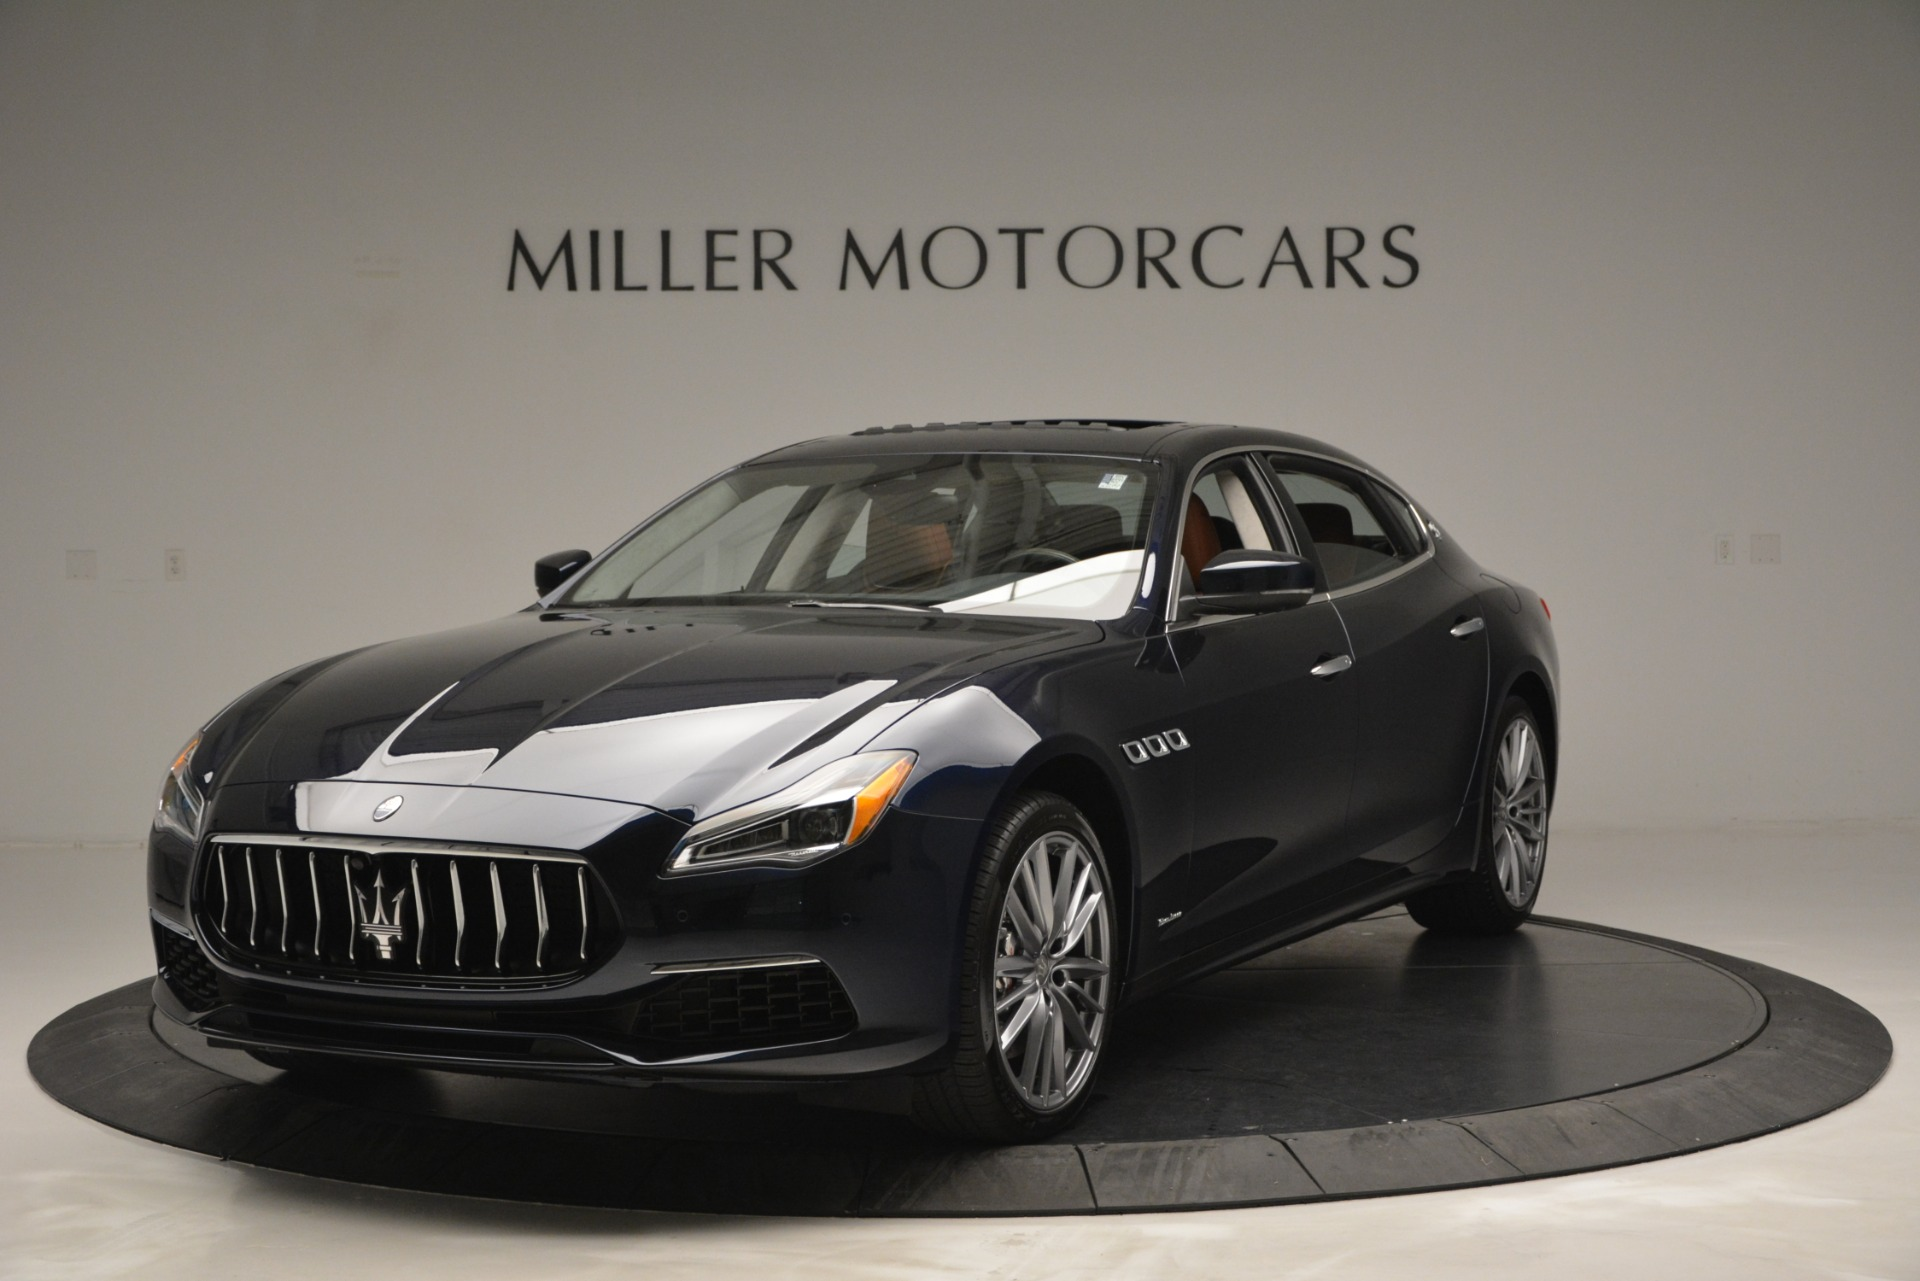 New 2019 Maserati Quattroporte S Q4 GranLusso Edizione Nobile for sale Sold at Bentley Greenwich in Greenwich CT 06830 1